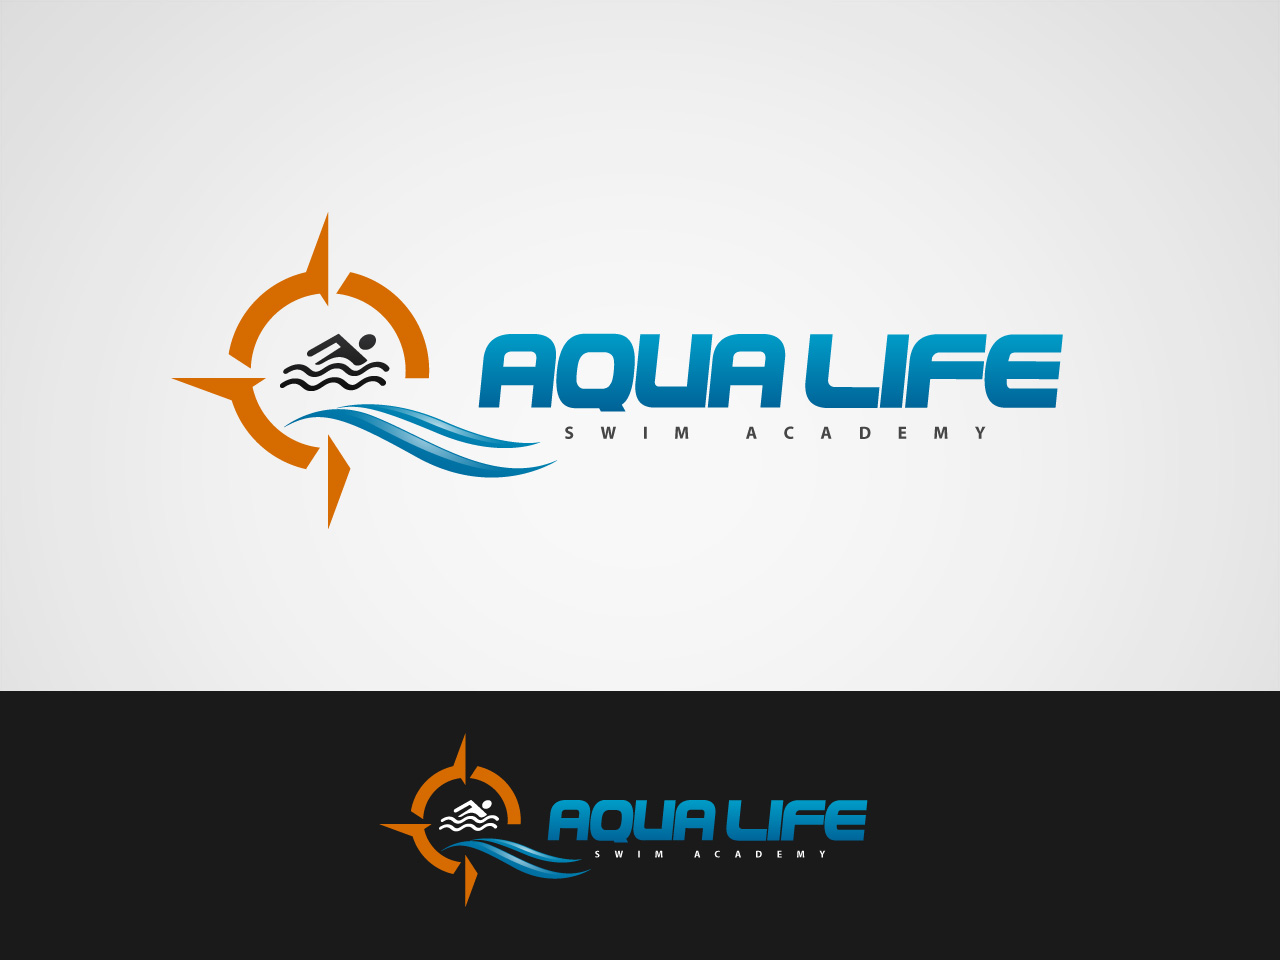 Logo Design by jpbituin - Entry No. 79 in the Logo Design Contest Artistic Logo Design Wanted for The Aqua Life Swim Academy.